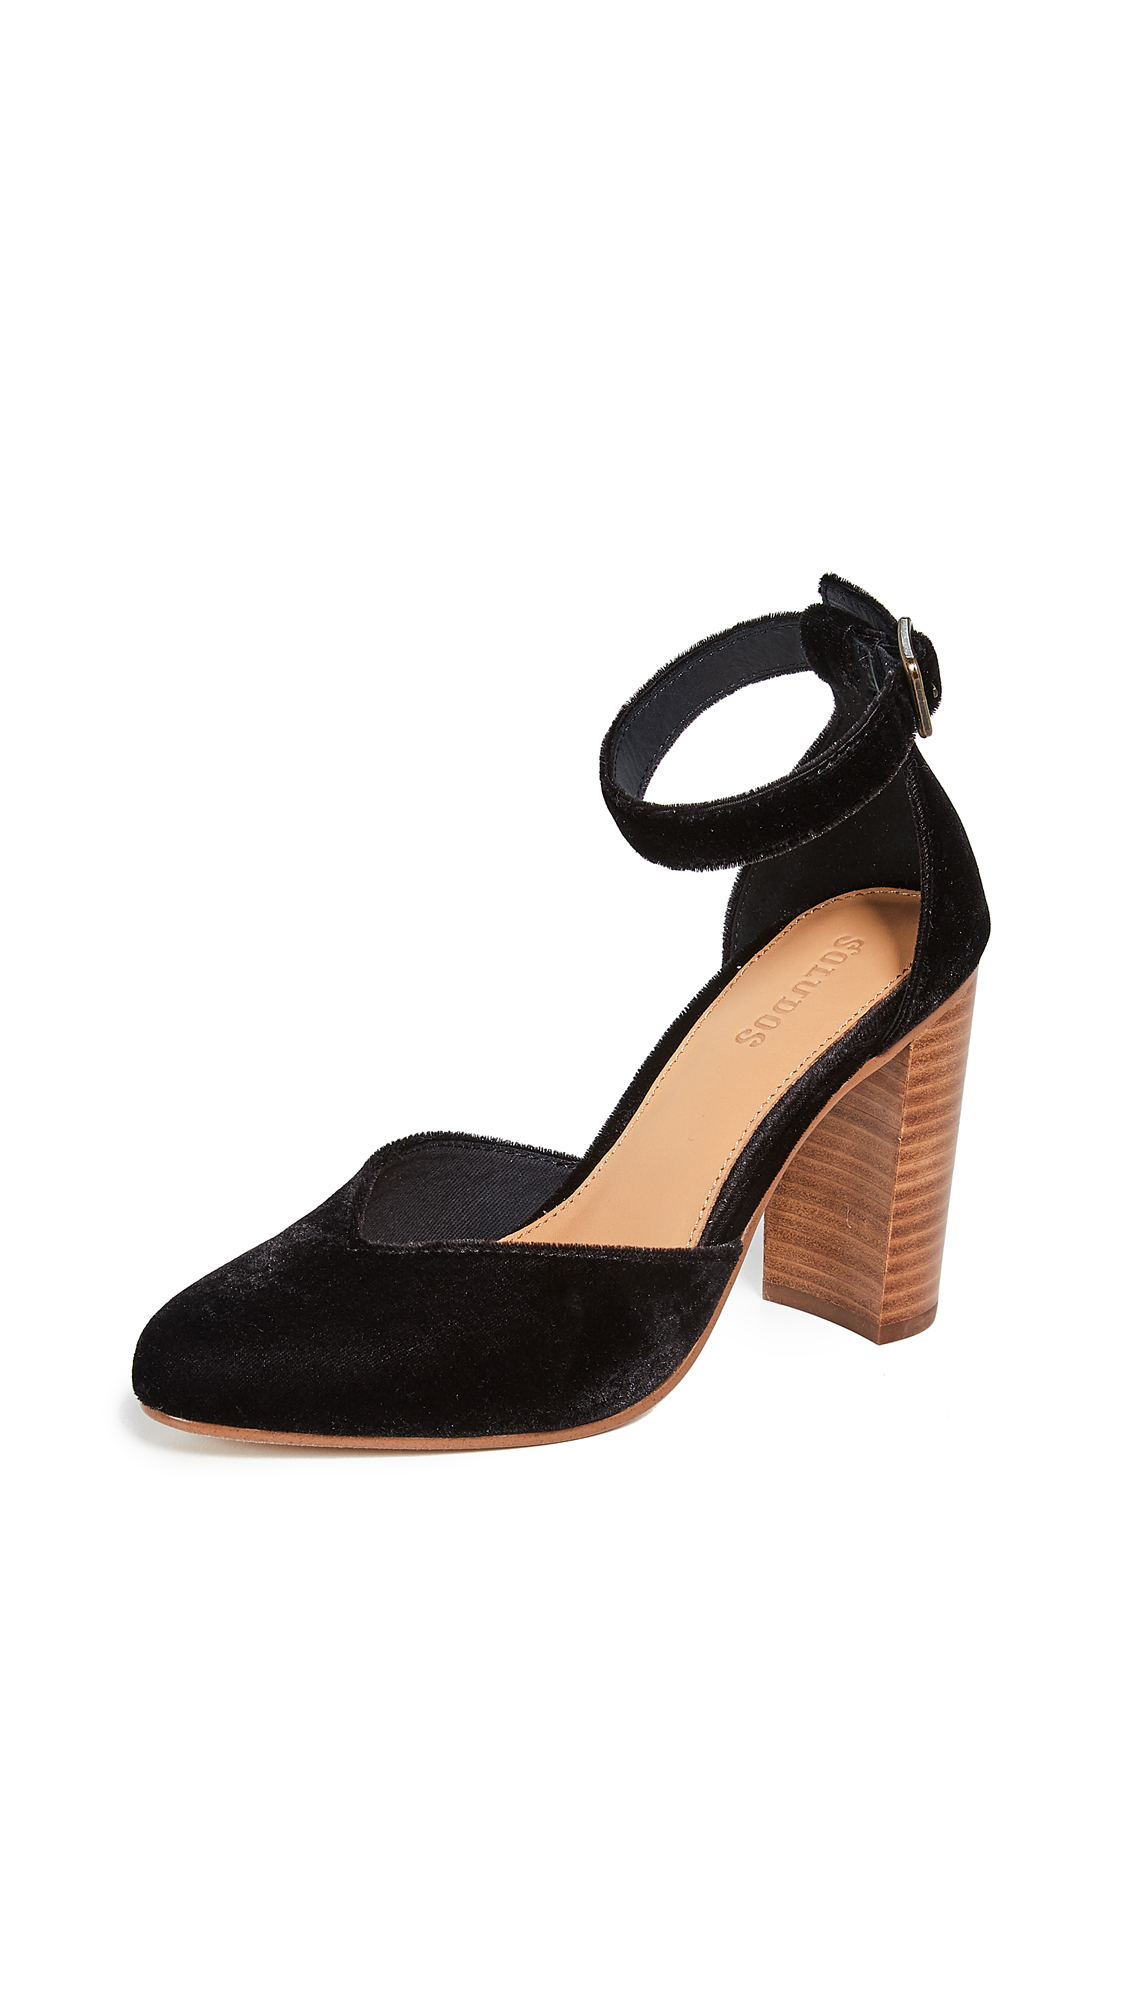 Soludos Collette Block Heel Pumps - Black